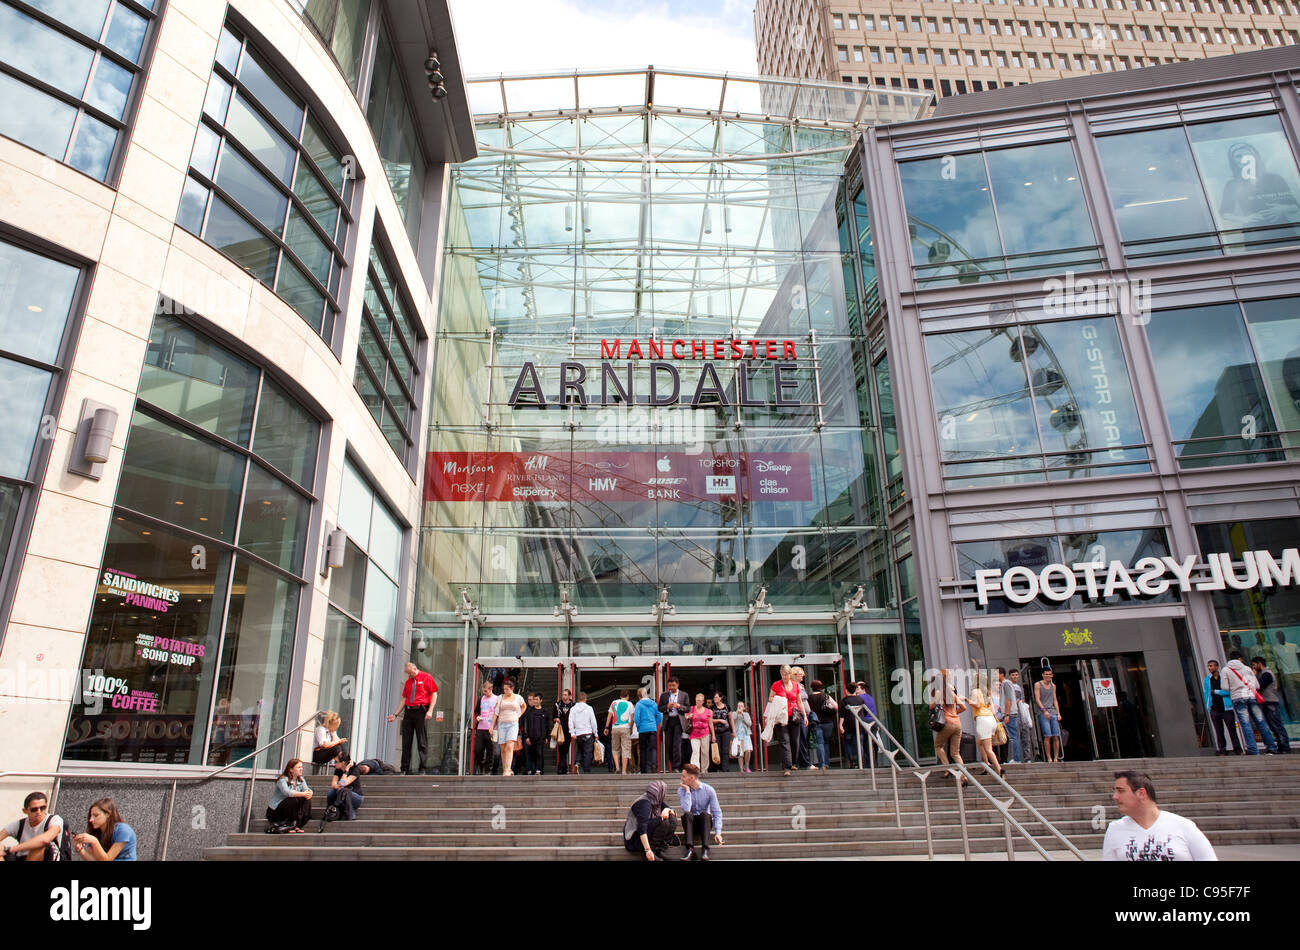 The Arndale Centre in Manchester, UK - Stock Image